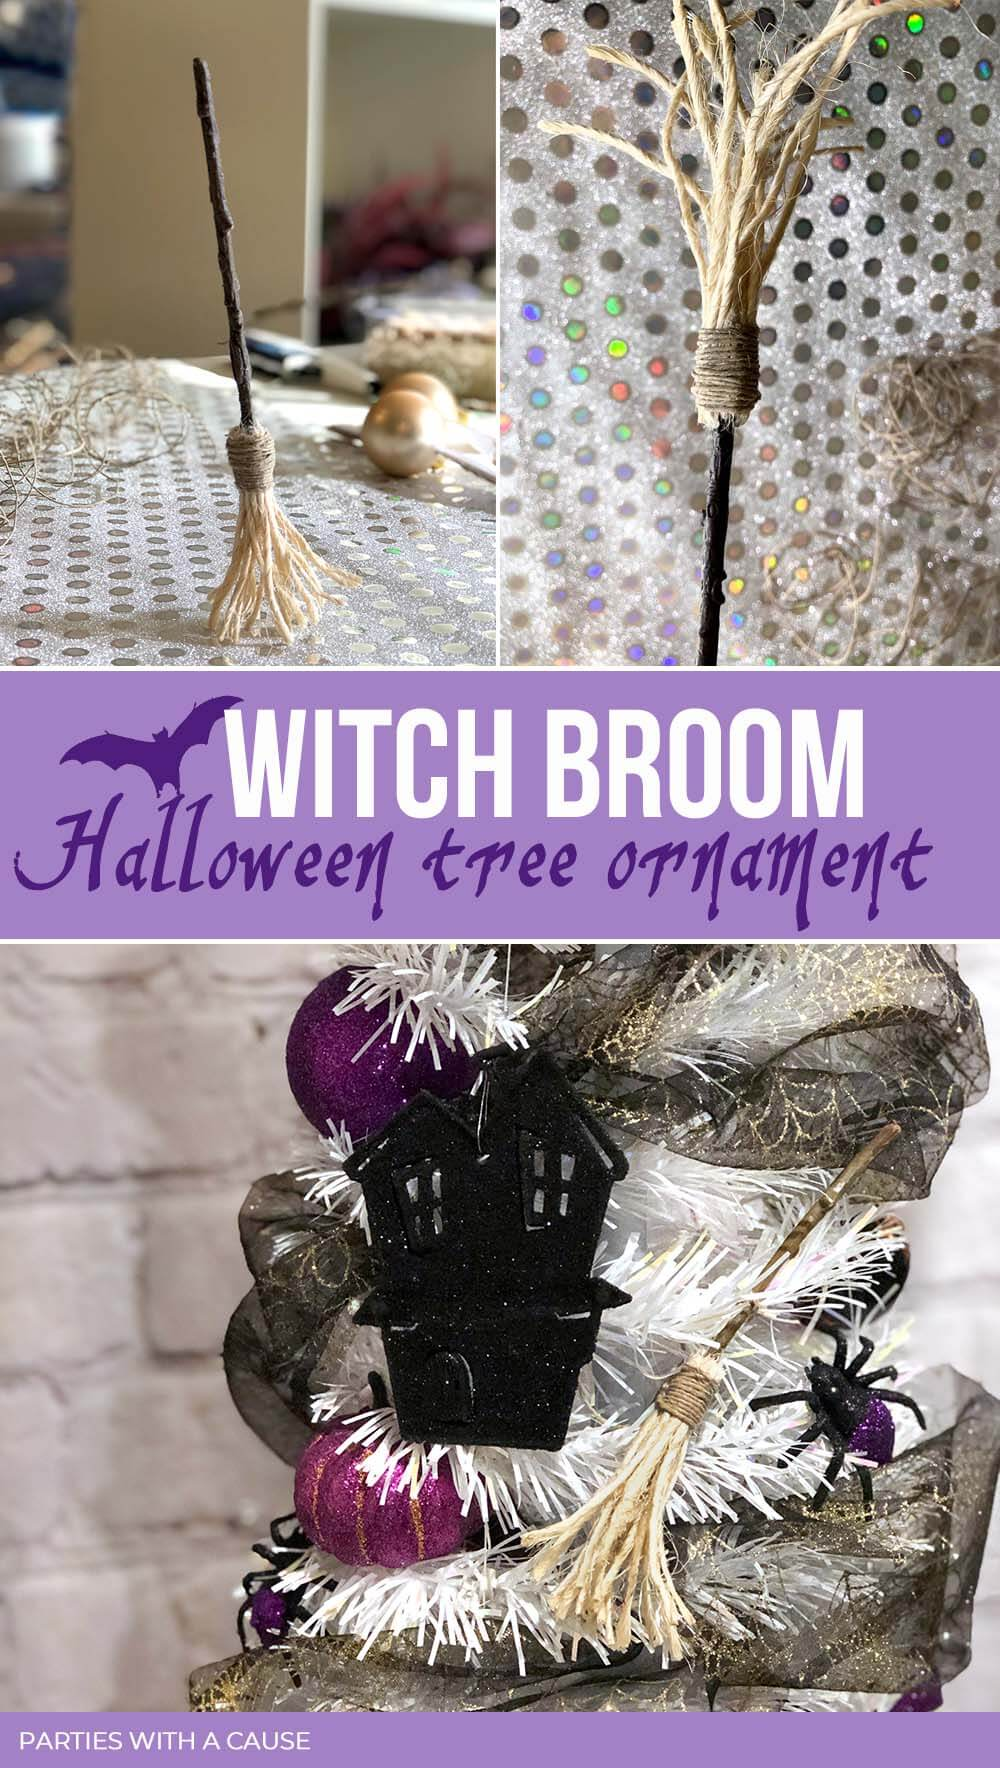 Witch broom Halloween tree ornament by Salt Lake Party Stylist